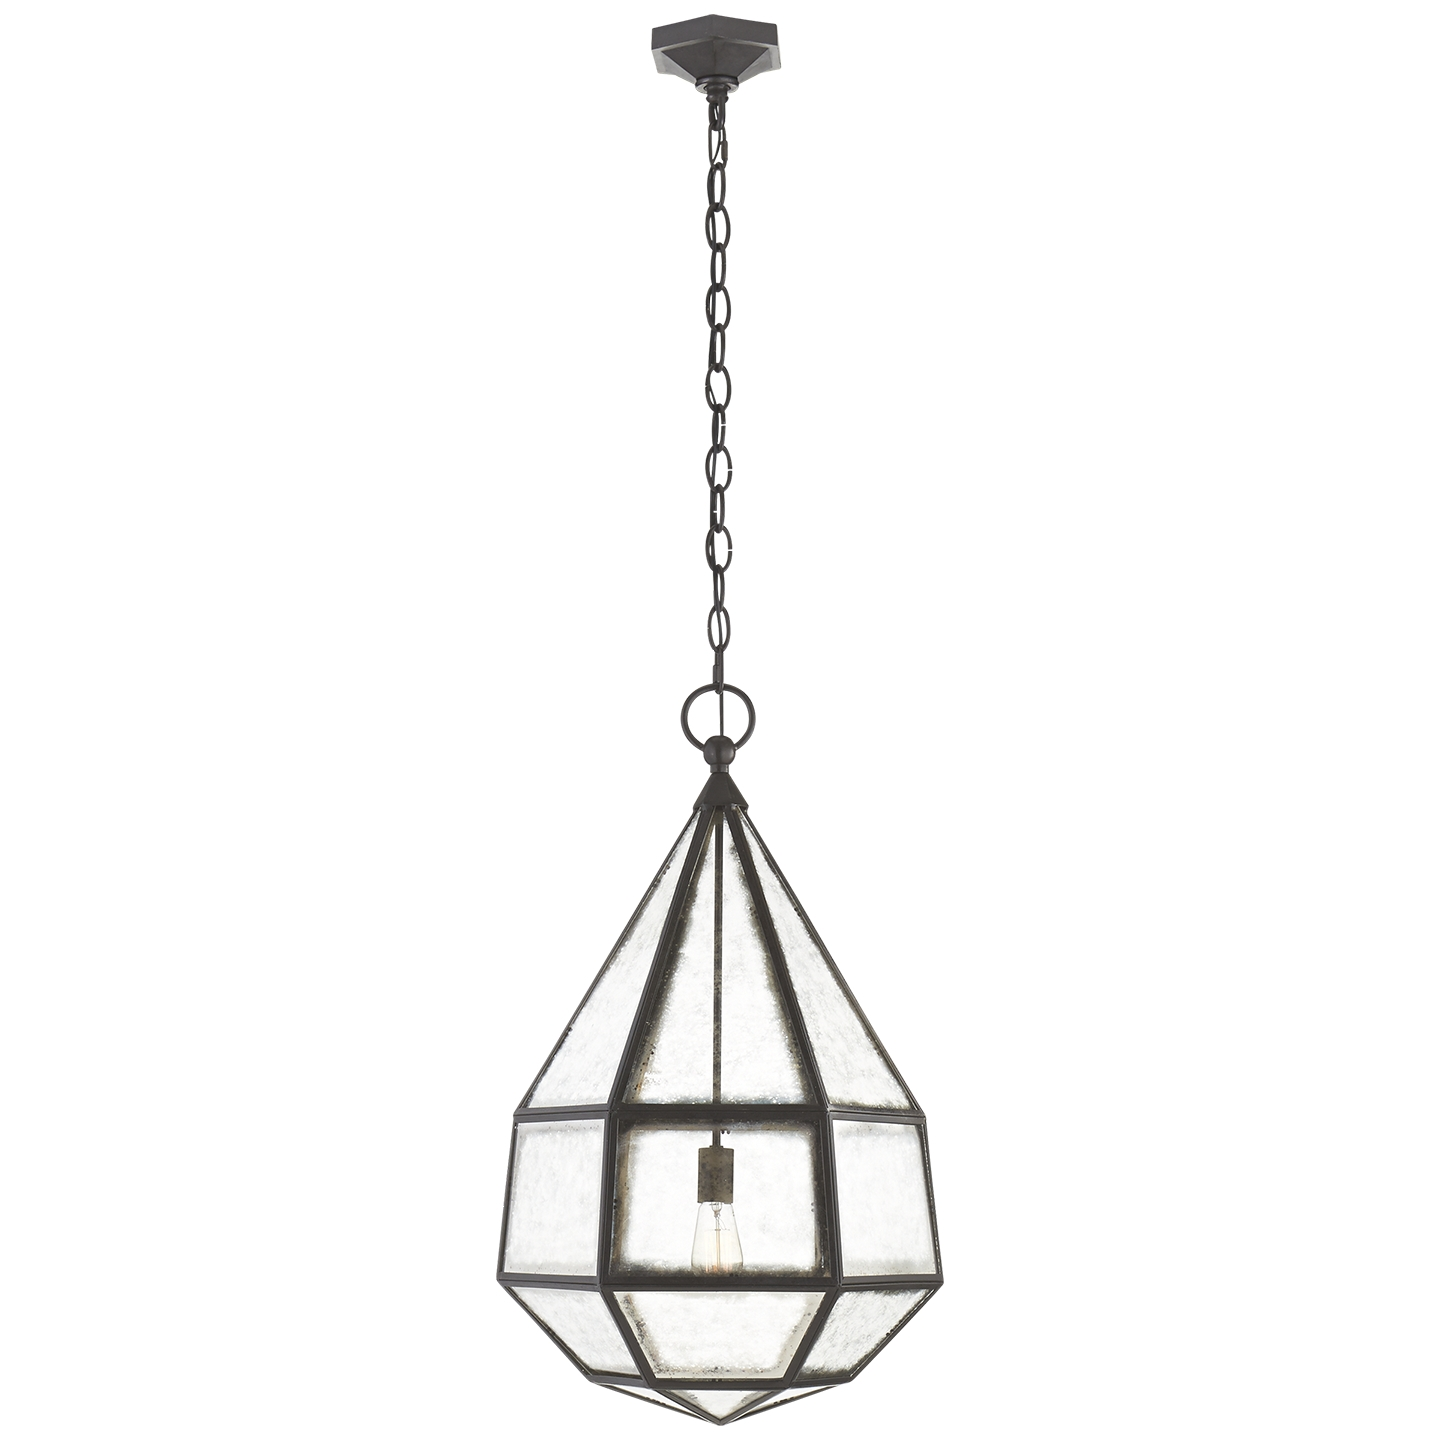 Visual Comfort Kw5022ai Cg Kelly Wearstler Cubist Large Chandelier Throughout Antique Mirror Chandelier (Image 12 of 15)